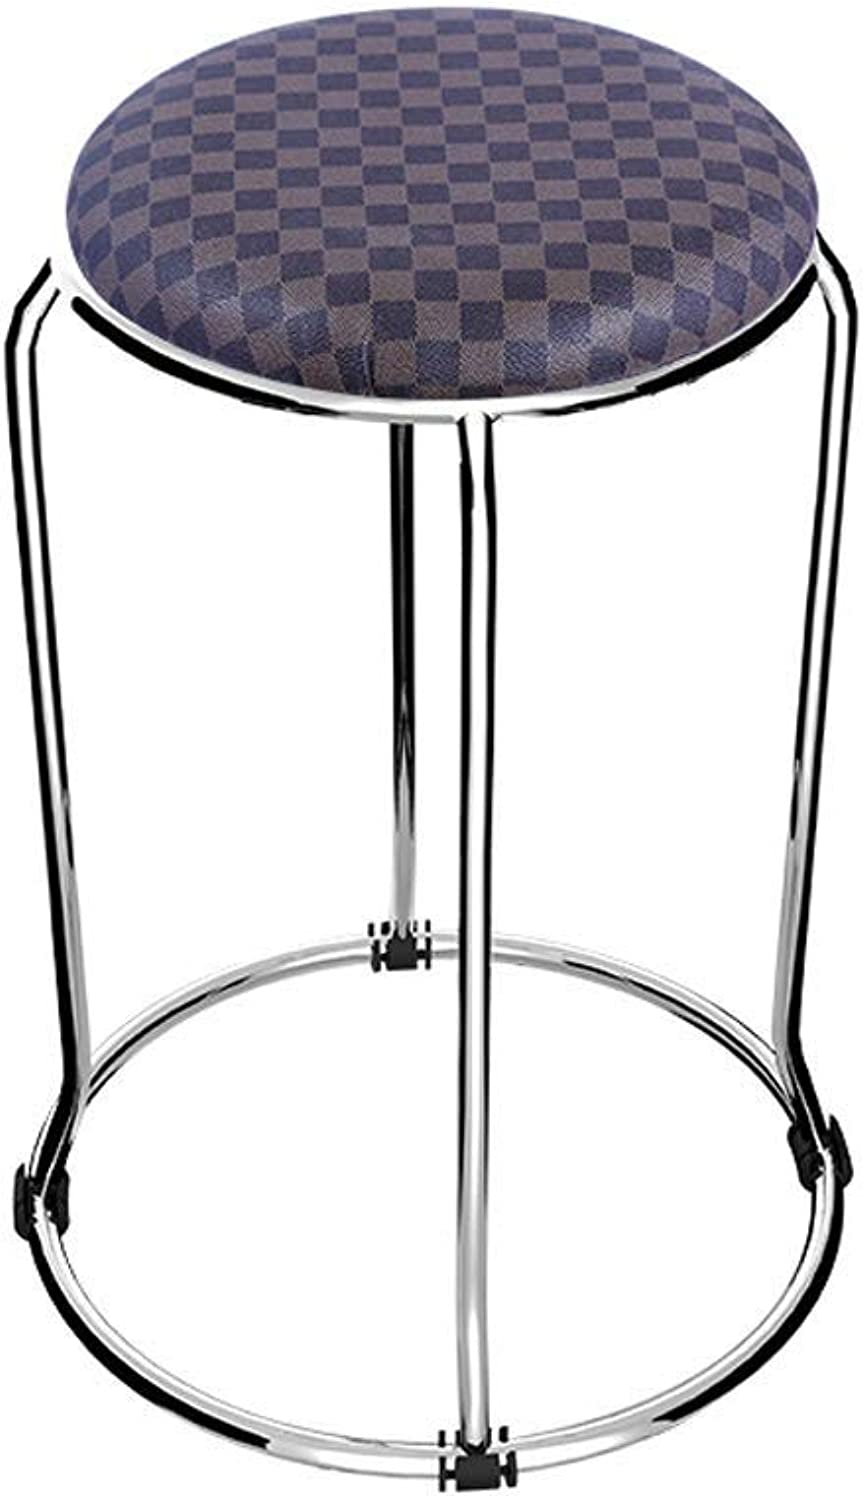 Stainless Steel Stool Home Fashion Creative Stool High Stool HENGXIAO (color   Variegated)